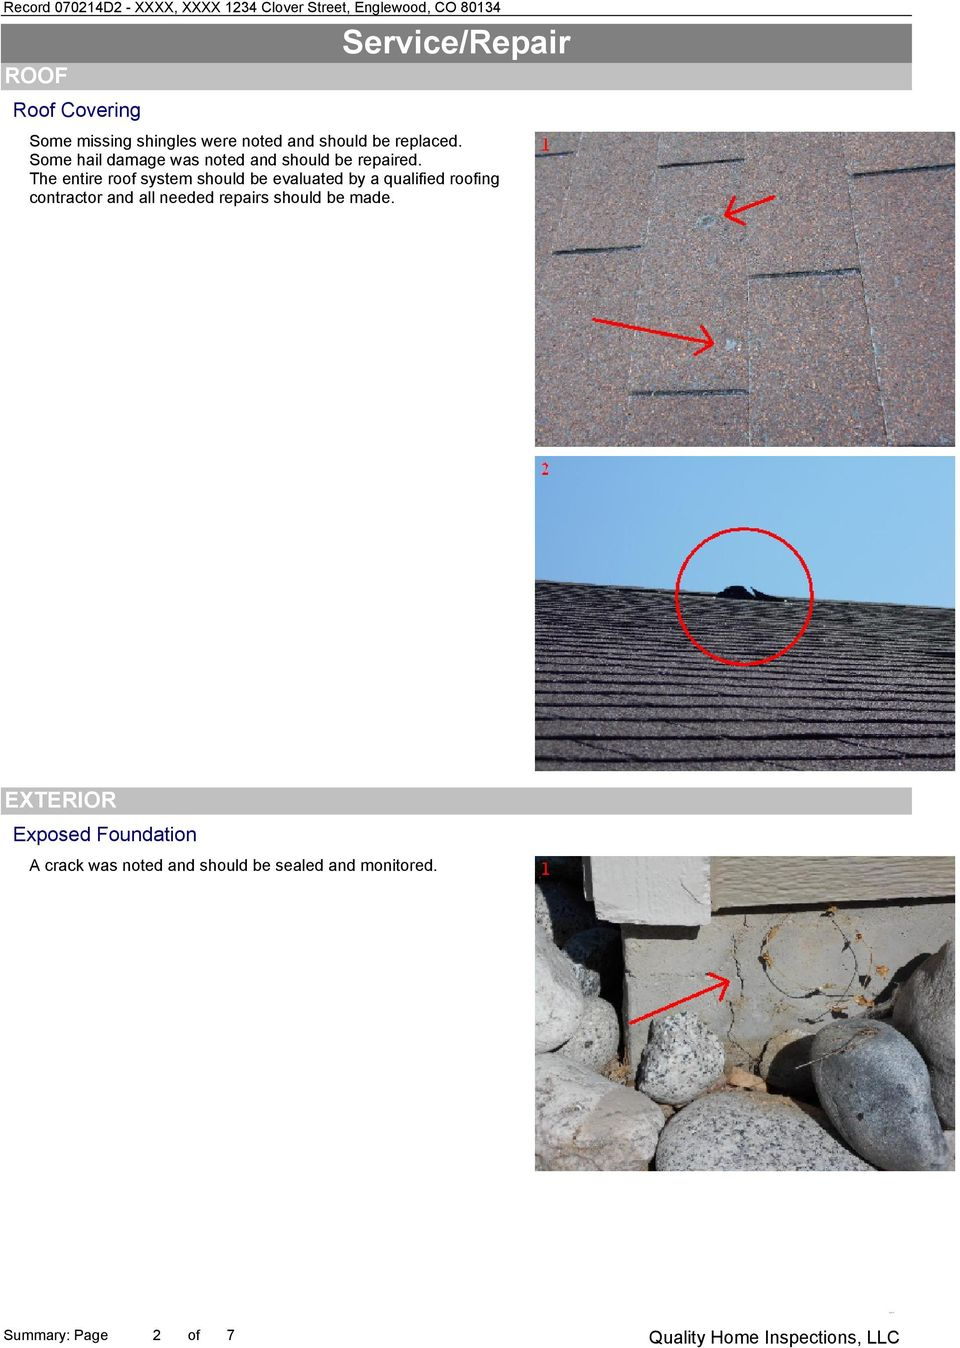 The entire roof system should be evaluated by a qualified roofing contractor and all needed